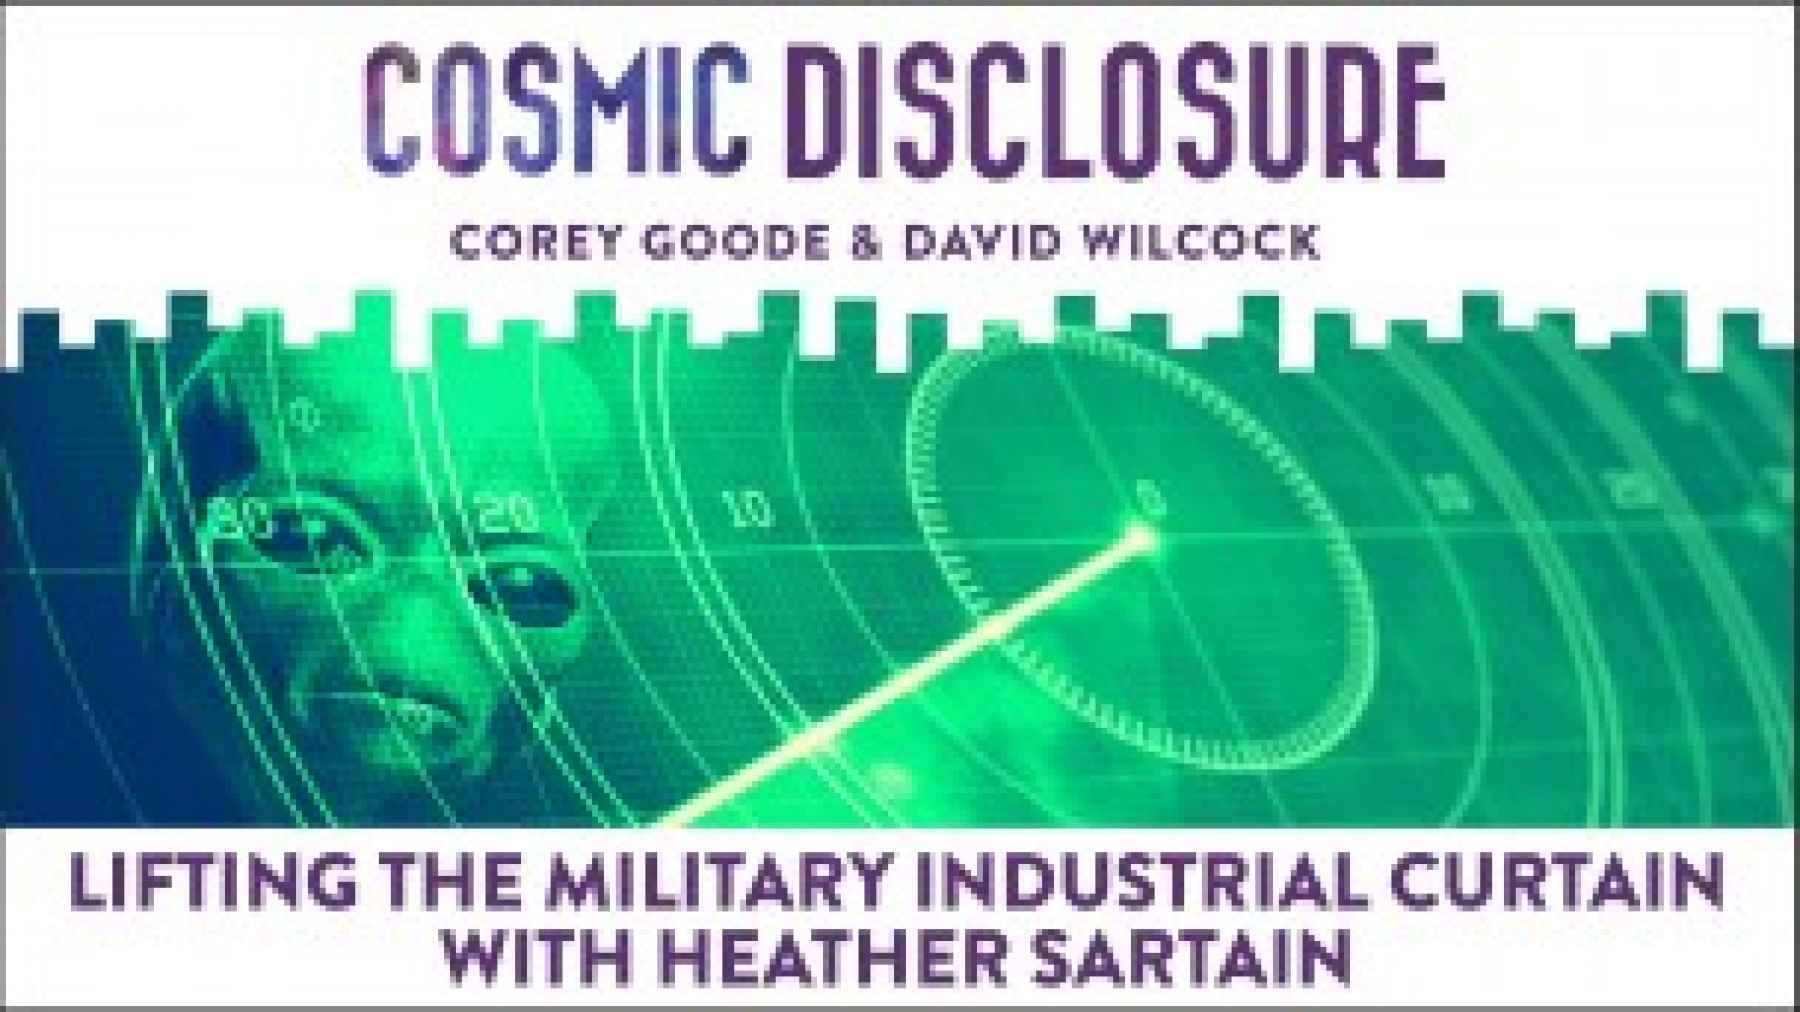 https://de.spherebeingalliance.com/media/img/1800x1200/2017-01/s6e17_lifting_the_military_industrial_curtain_w_heather_sartain_16x9.jpg